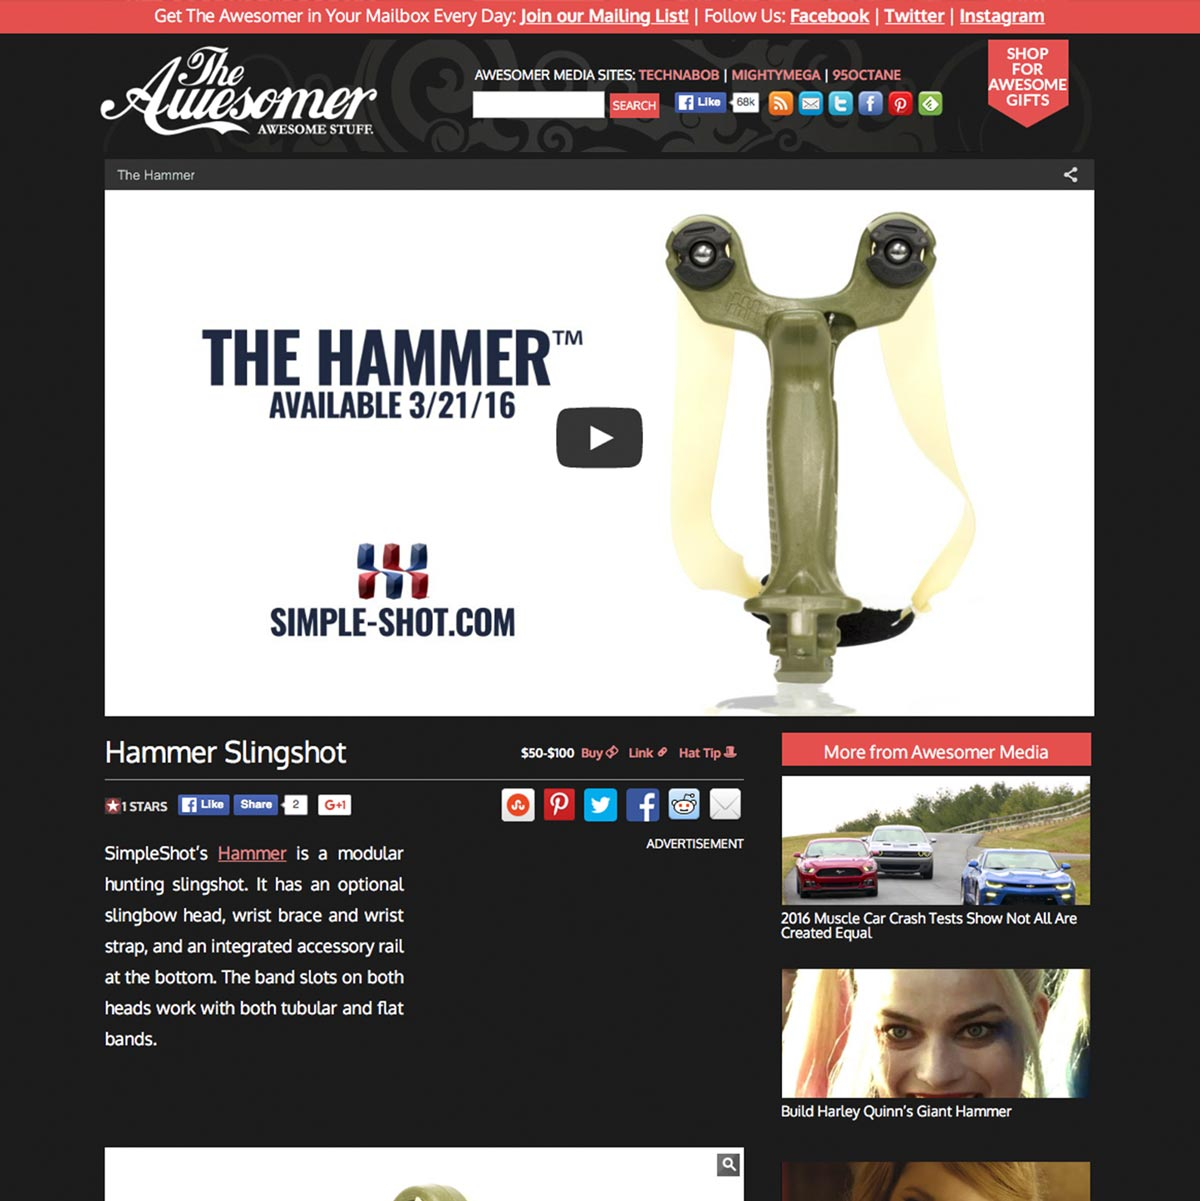 The Awesomer Hammer Slingshot Review